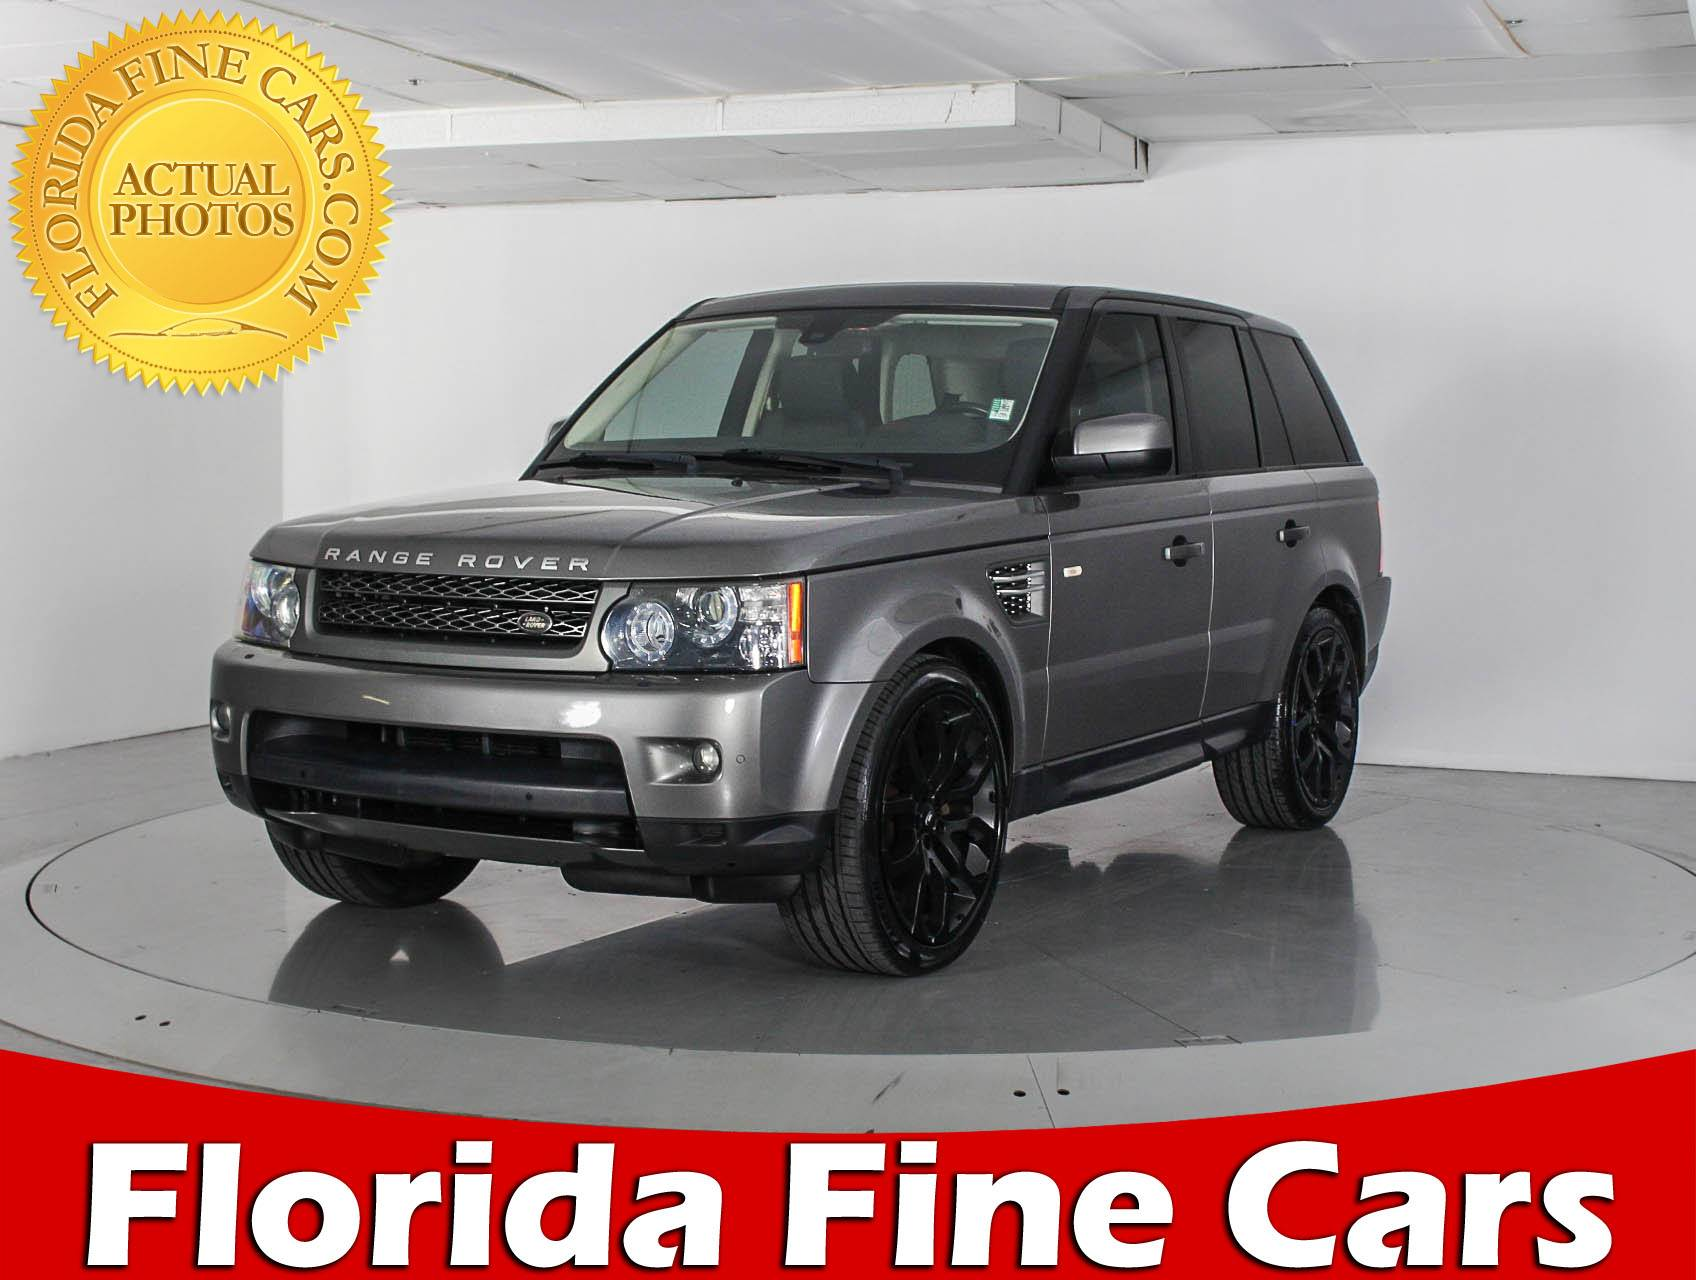 Used 2011 LAND ROVER RANGE ROVER SPORT HSE SUV for sale in WEST